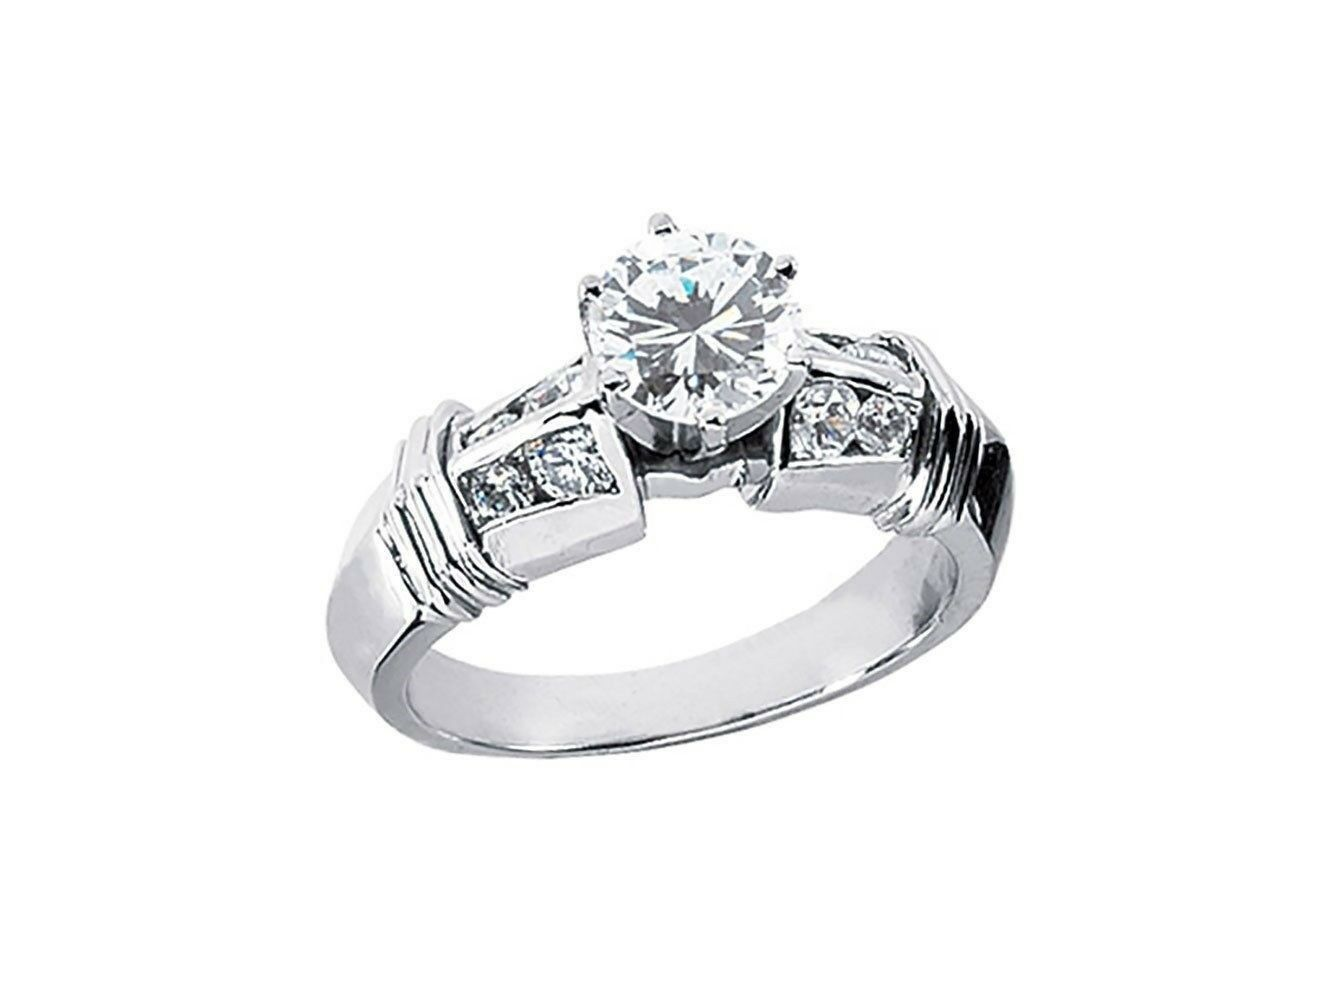 Natural 0.90Ct Round Cut Diamond Bridal Engagement Ring Solid 14k gold IJ I1